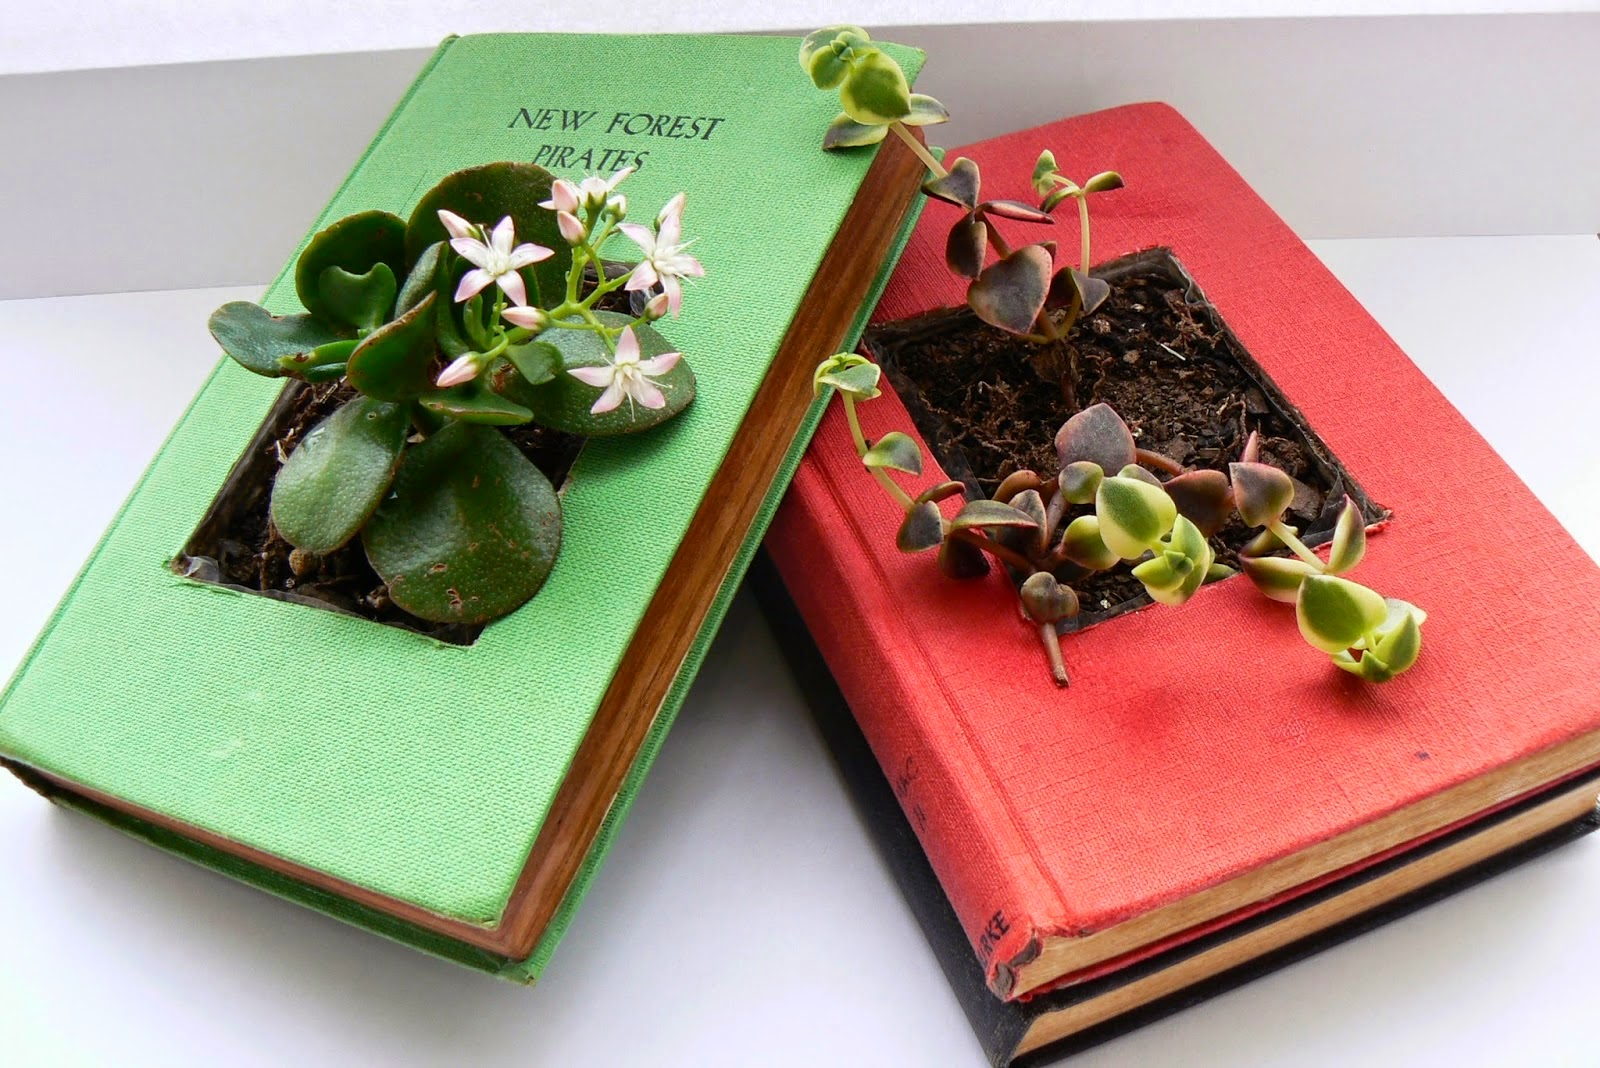 http://ld-p.blogspot.com/2014/06/diy-recycled-book-planters.html